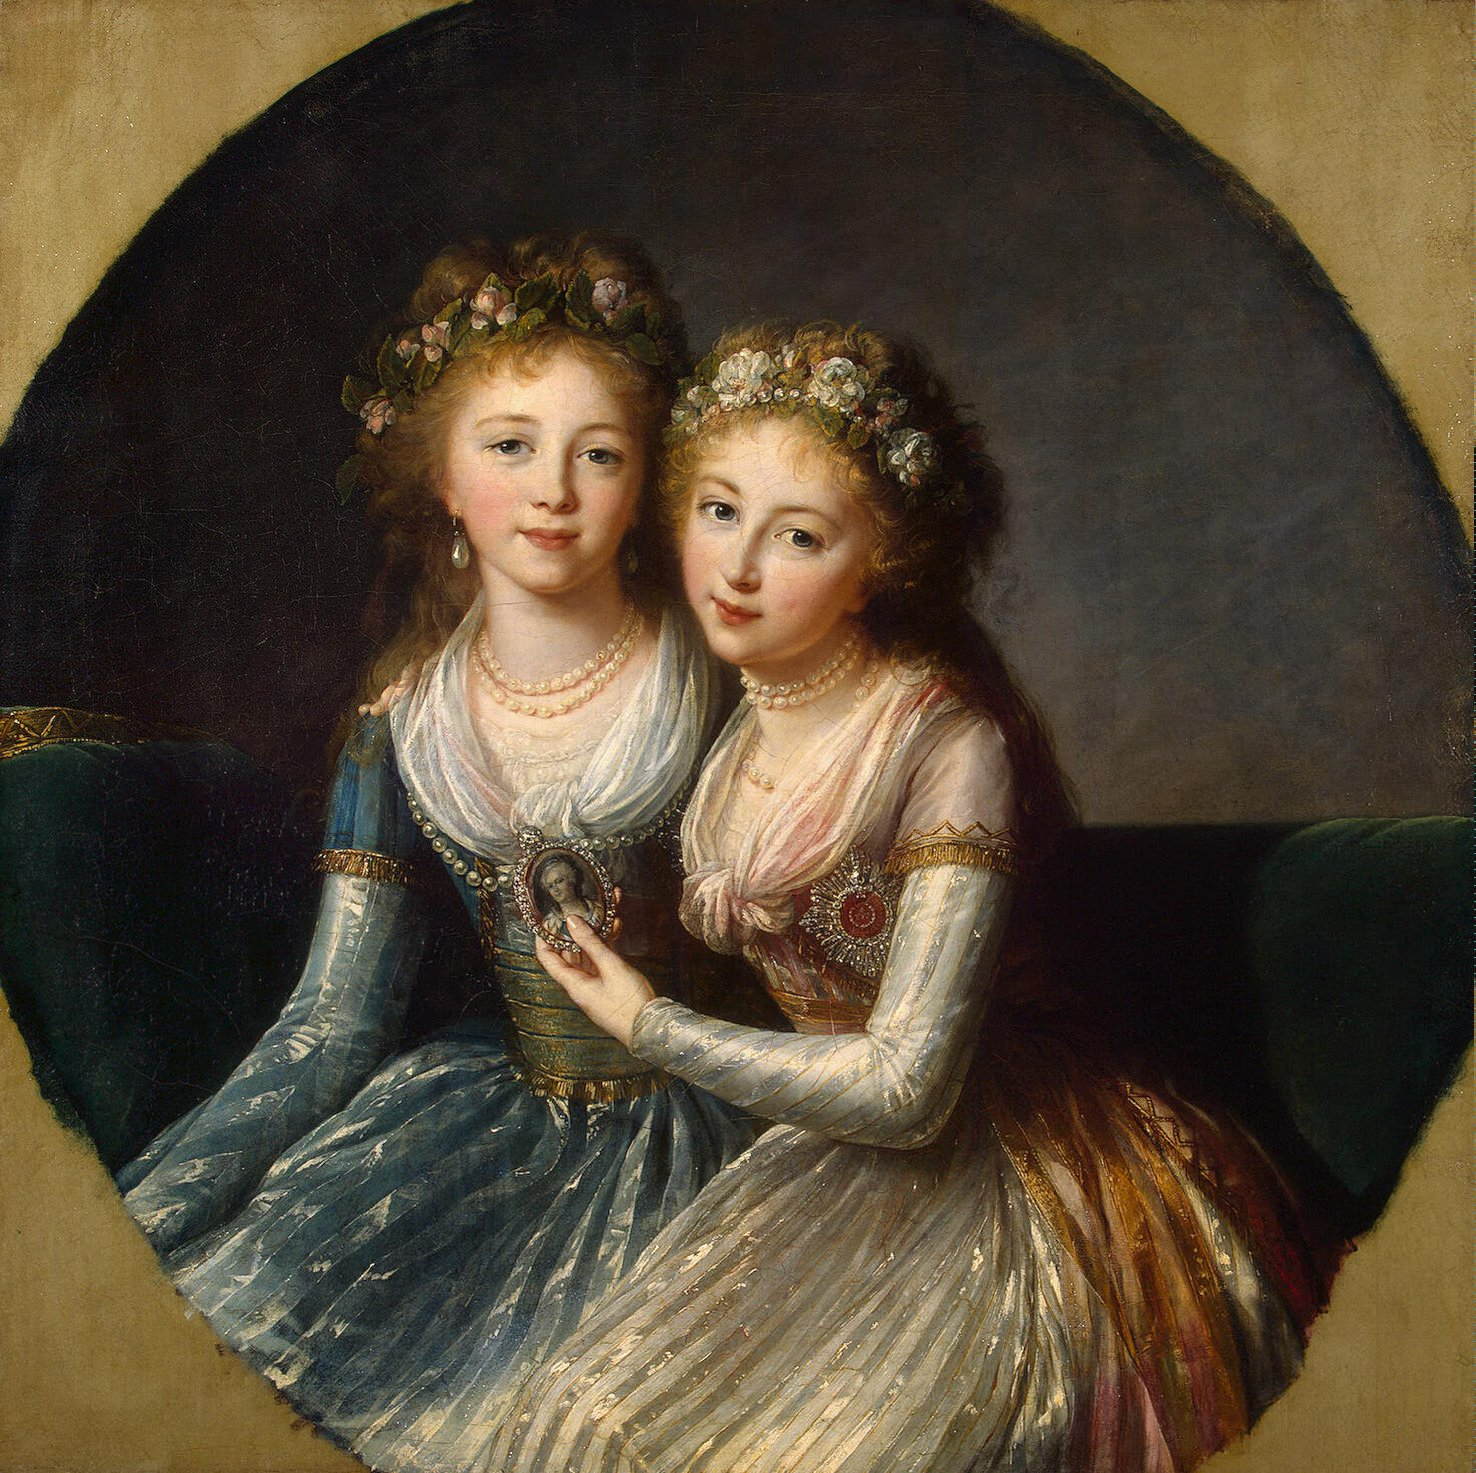 Alexandra and Elena, Daughters of Paul I of Russia by Élisabeth Vigée-Lebrun, 1796